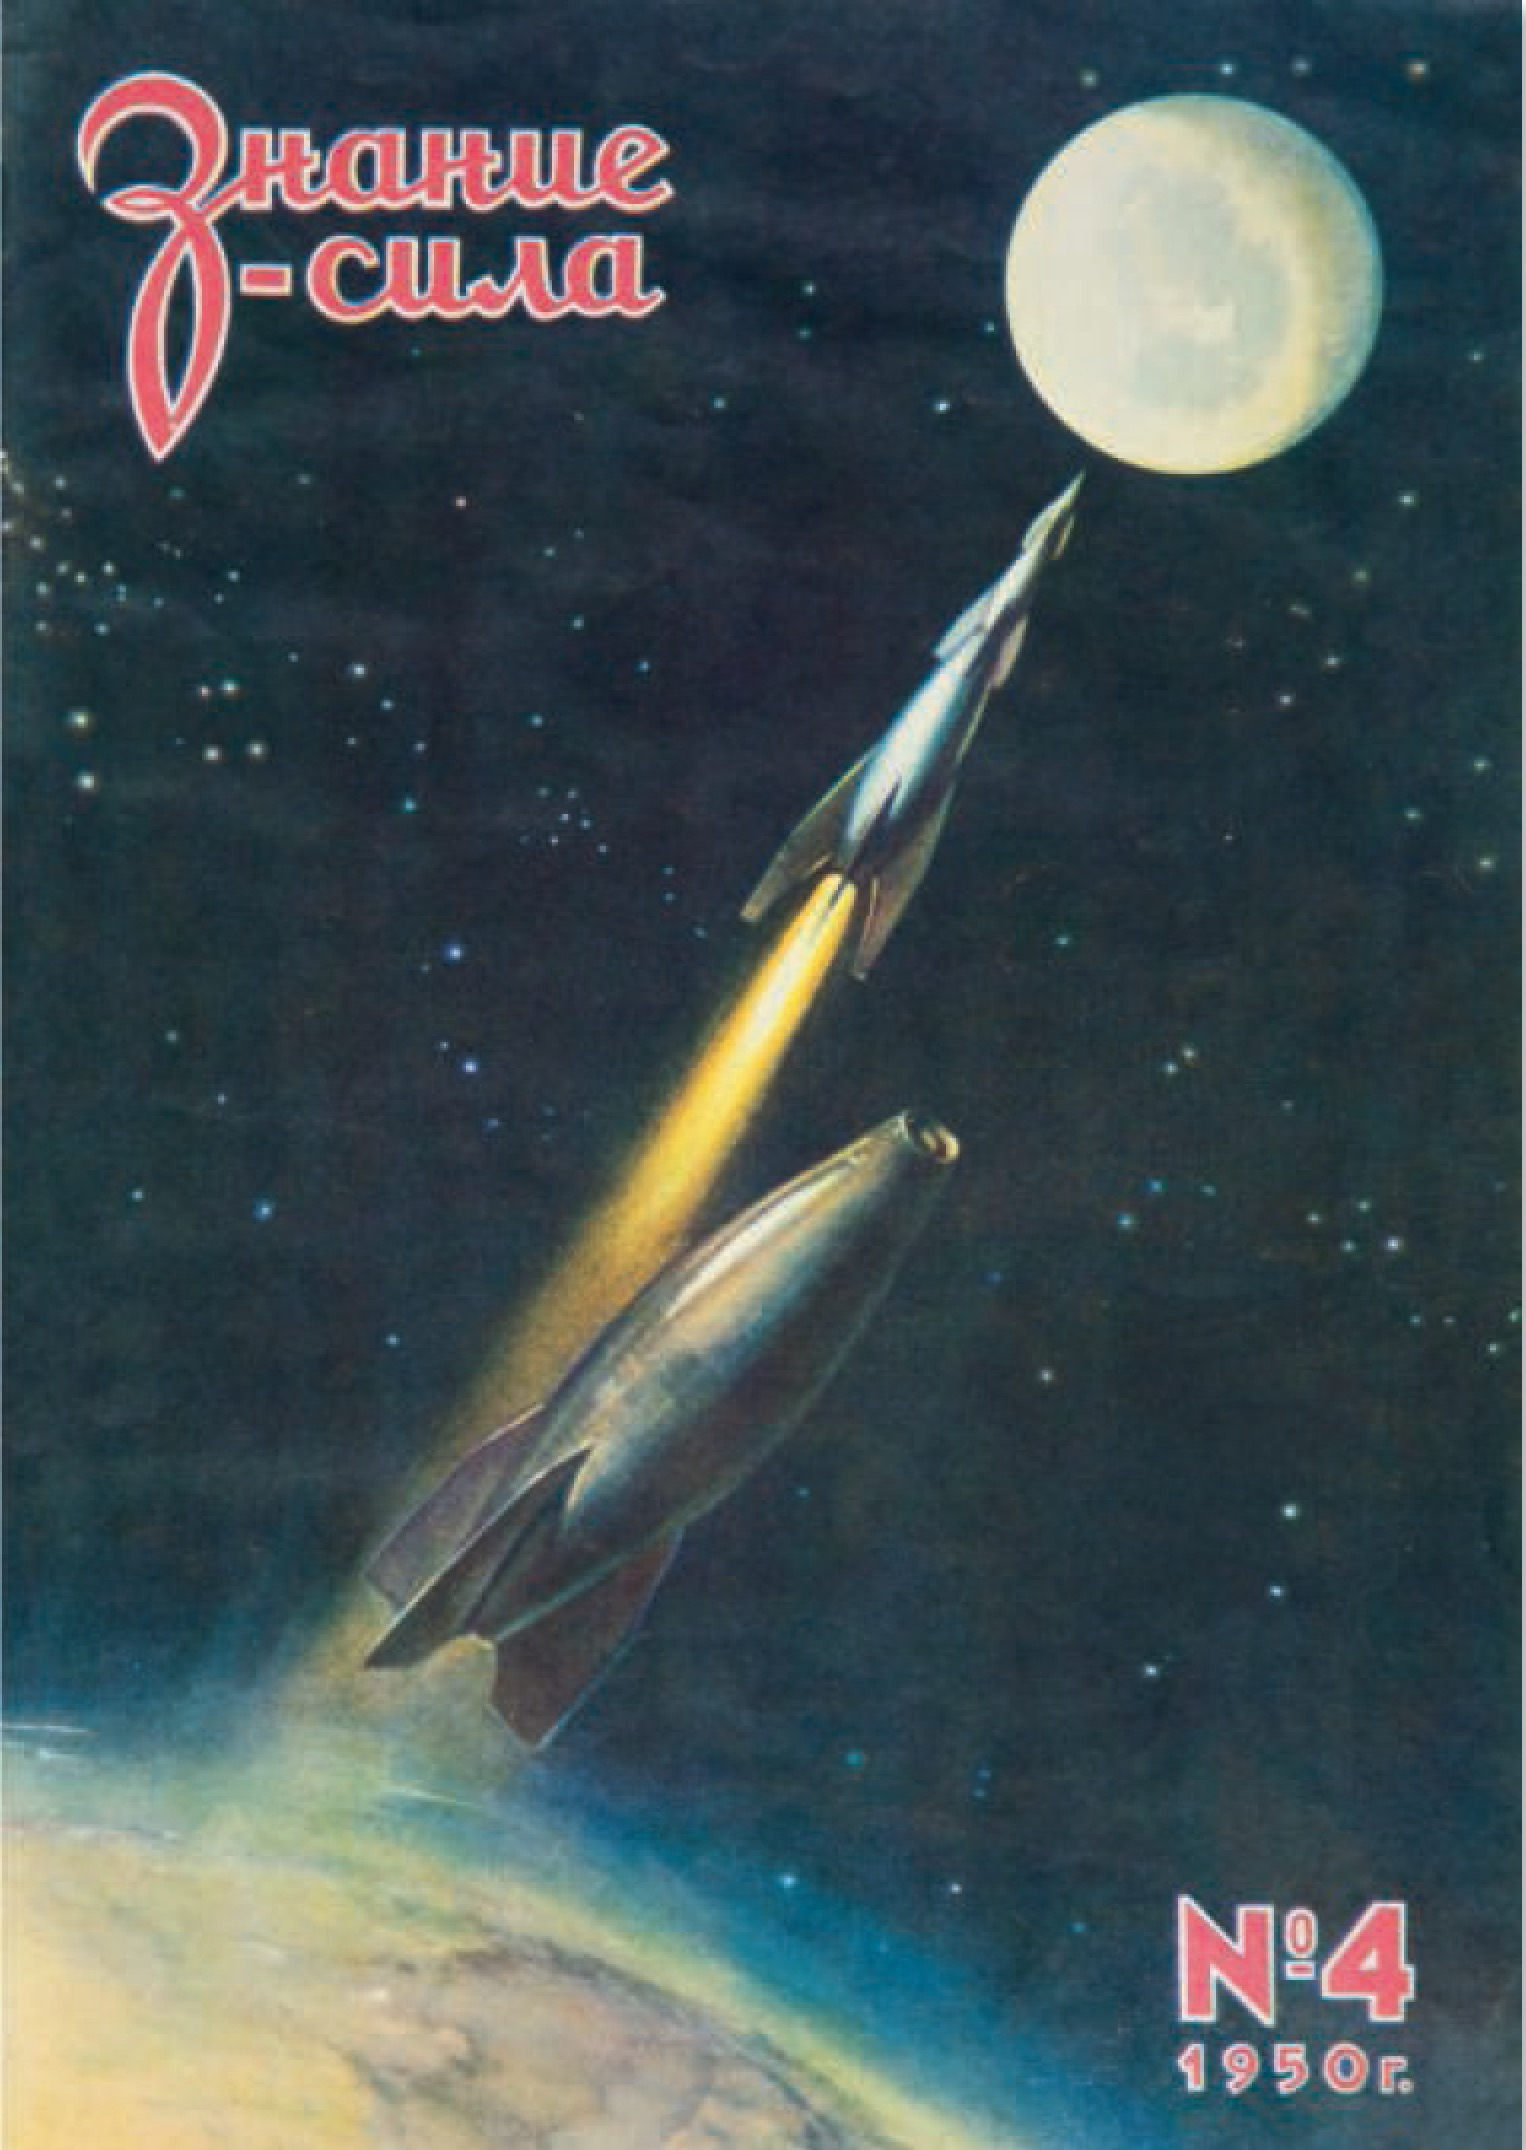 Knowledge is Power, issue 4, 1950, illustration by K. Artseulov for the article 'Road to the Stars', detailing the work of legendary Russian rocket scientist Konstantin Tsiolkovsky.